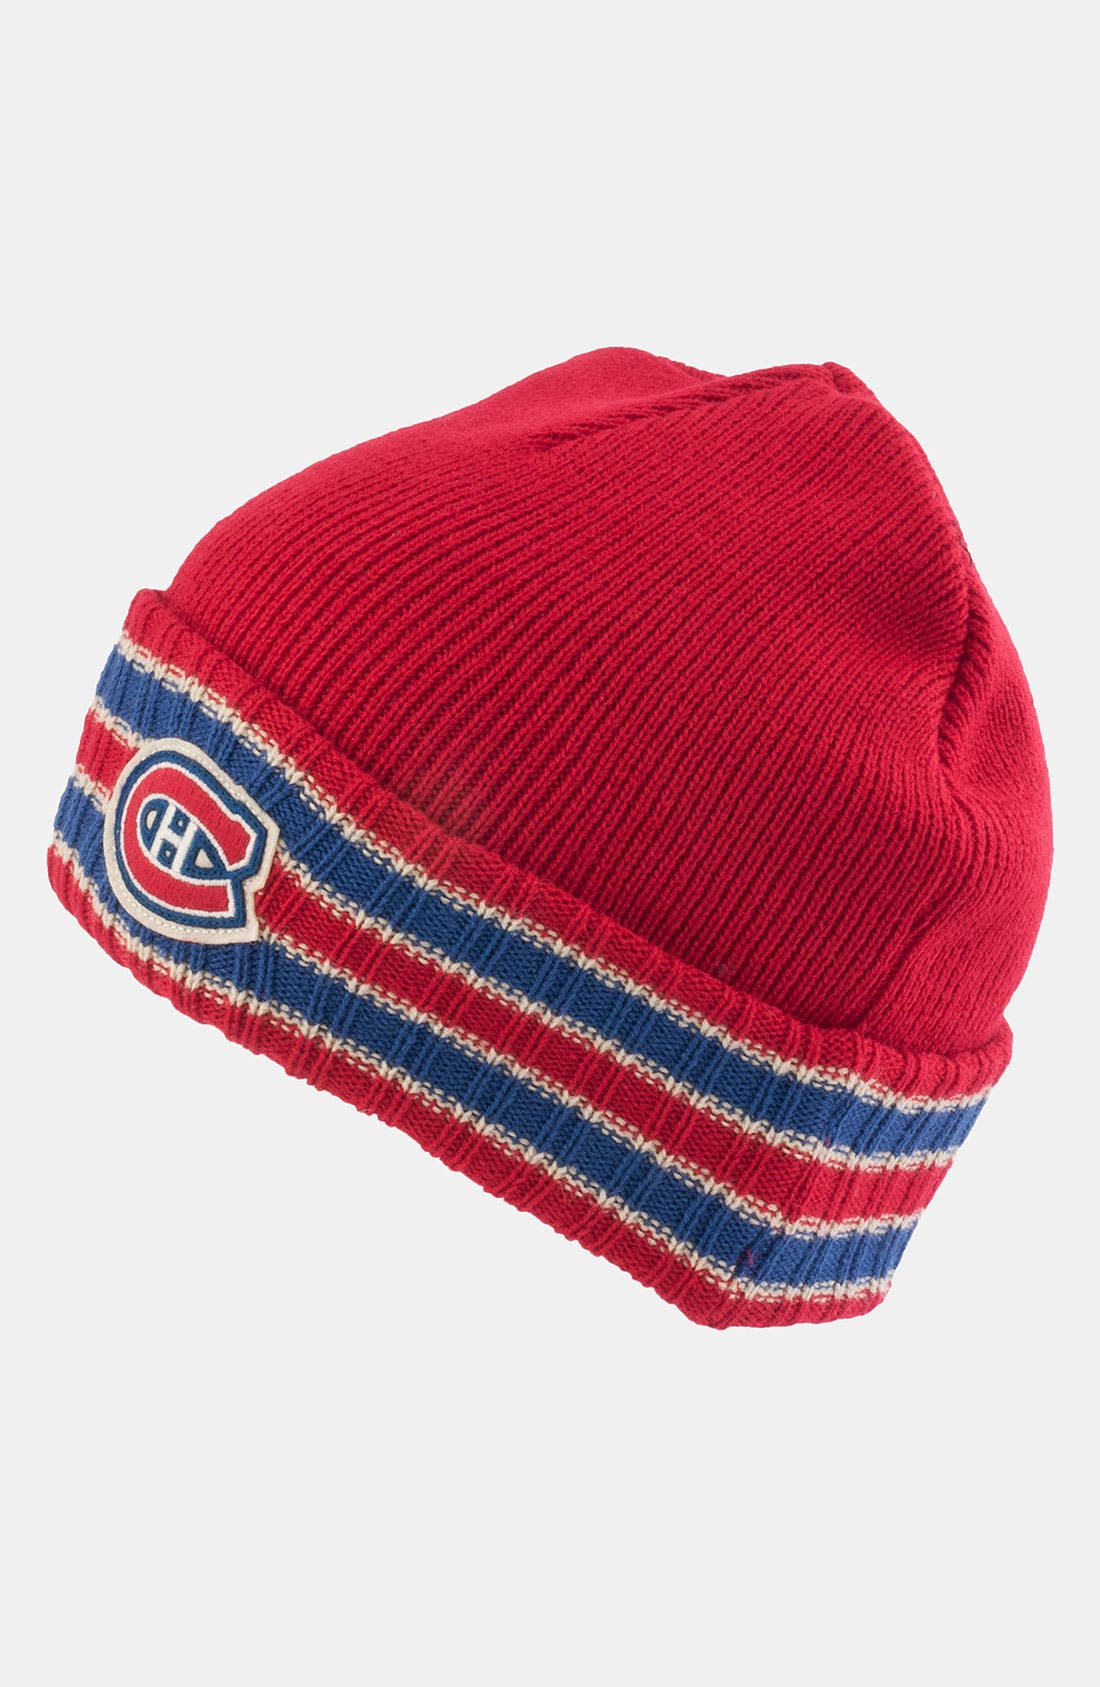 Alternate Image 1 Selected - American Needle 'Montreal Canadiens - Slash' Knit Hat